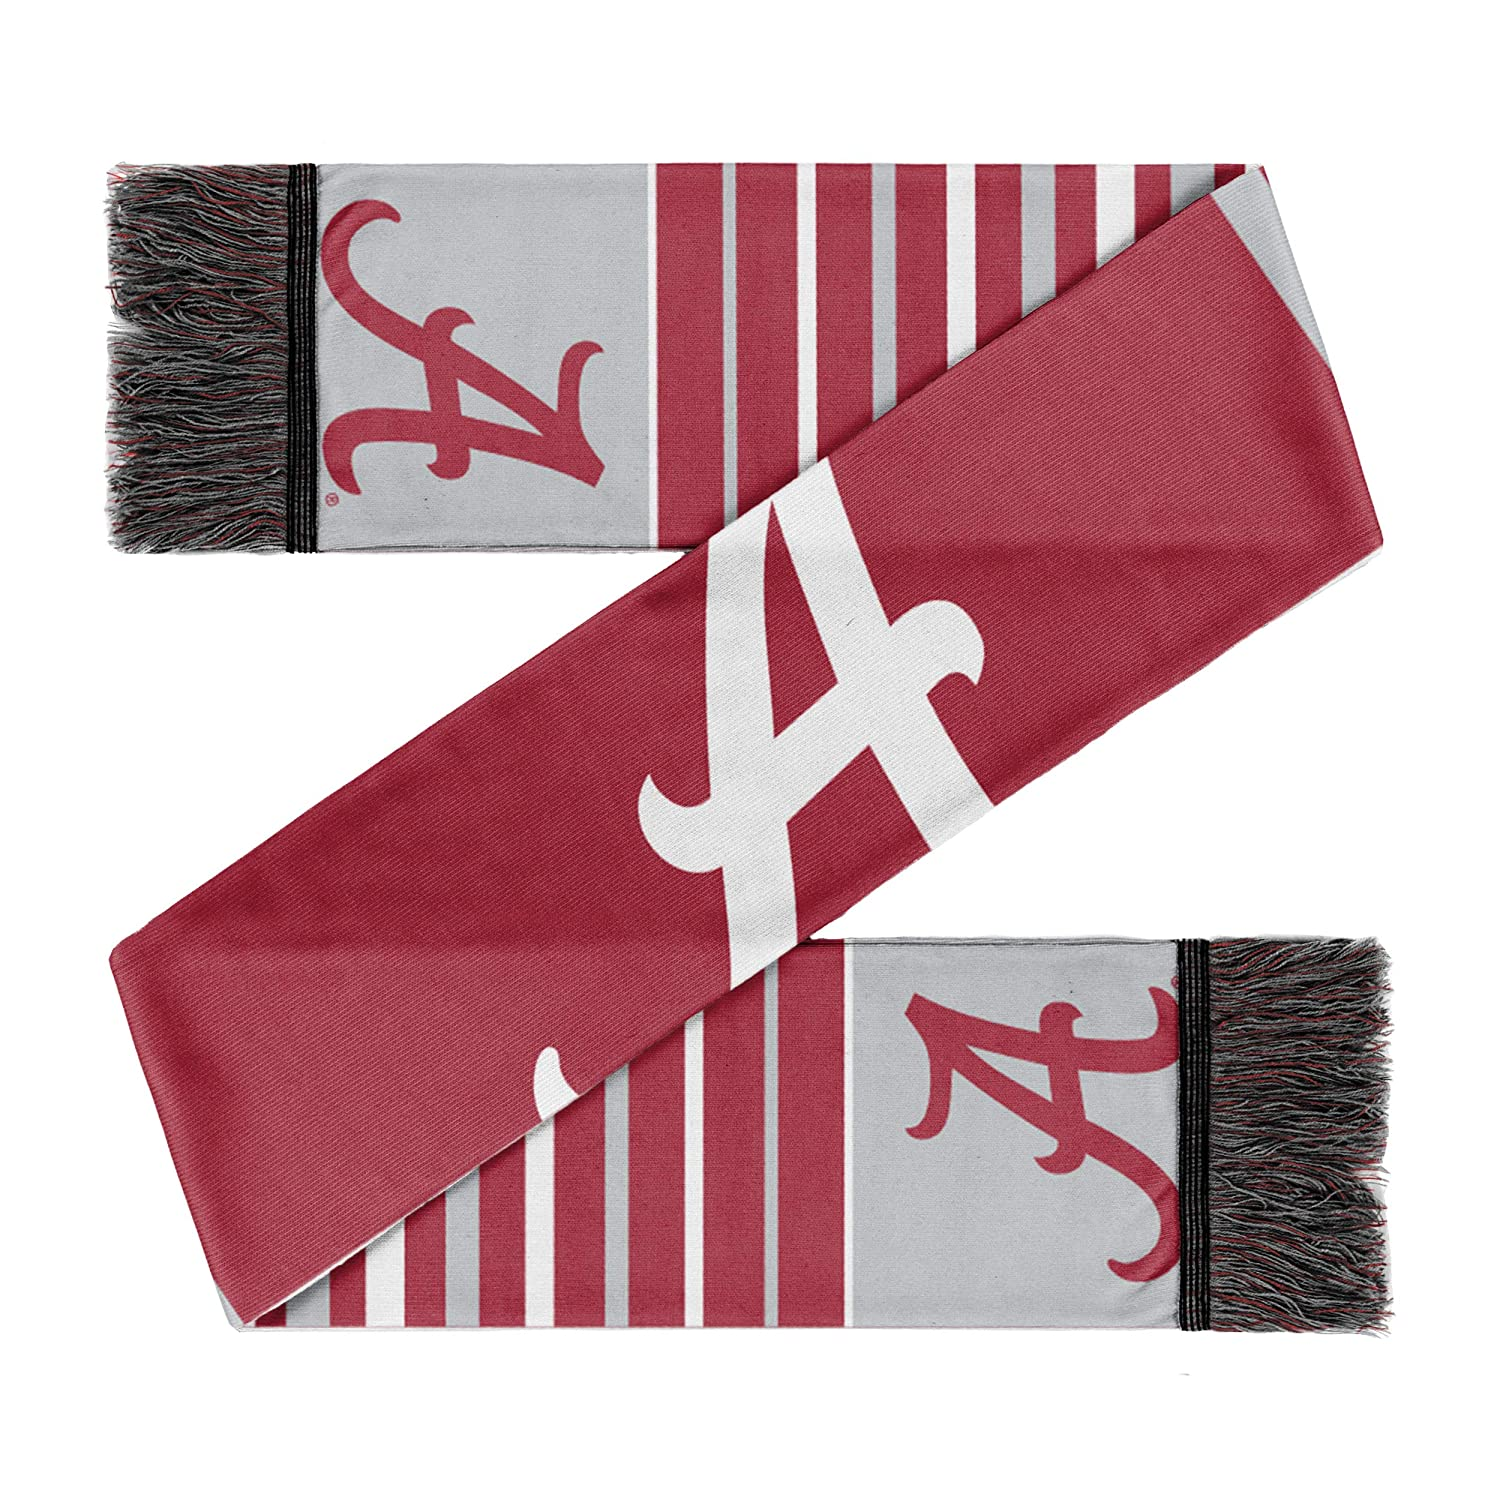 Limited Edition Neck Scarf Represent Your NCAA College and Show Your Team Spirit with Officially Licensed Fan Gear FOCO Big Logo Scarf